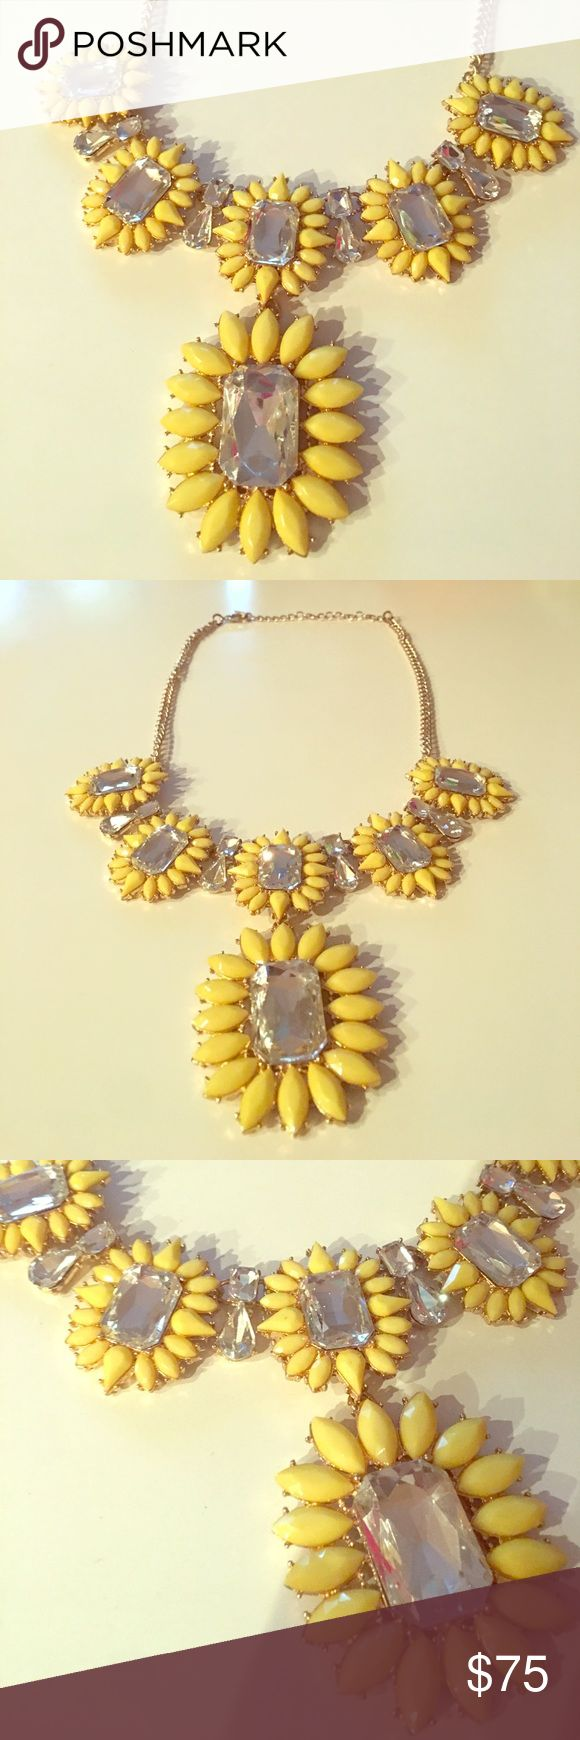 GORGEOUS Yellow Floral Necklace Yellow statement necklace from the Nordstrom Collection. 10 inches long - perfect for a elegant night out or to dress up a causal outfit. Make me an offer! Nordstrom Jewelry Necklaces